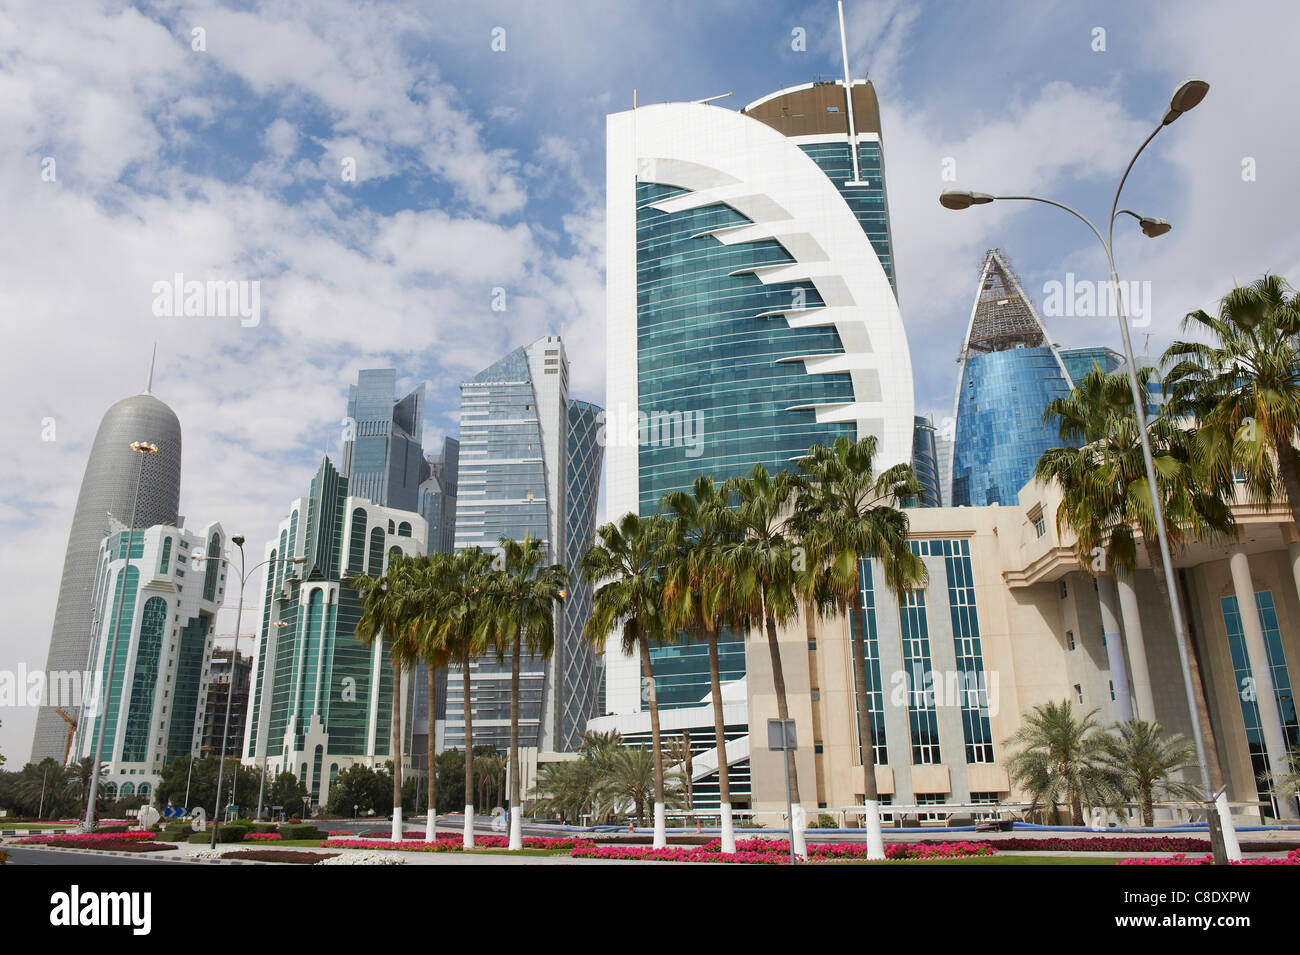 skyscrapers new buildings in the city center doha qatar - Stock Image